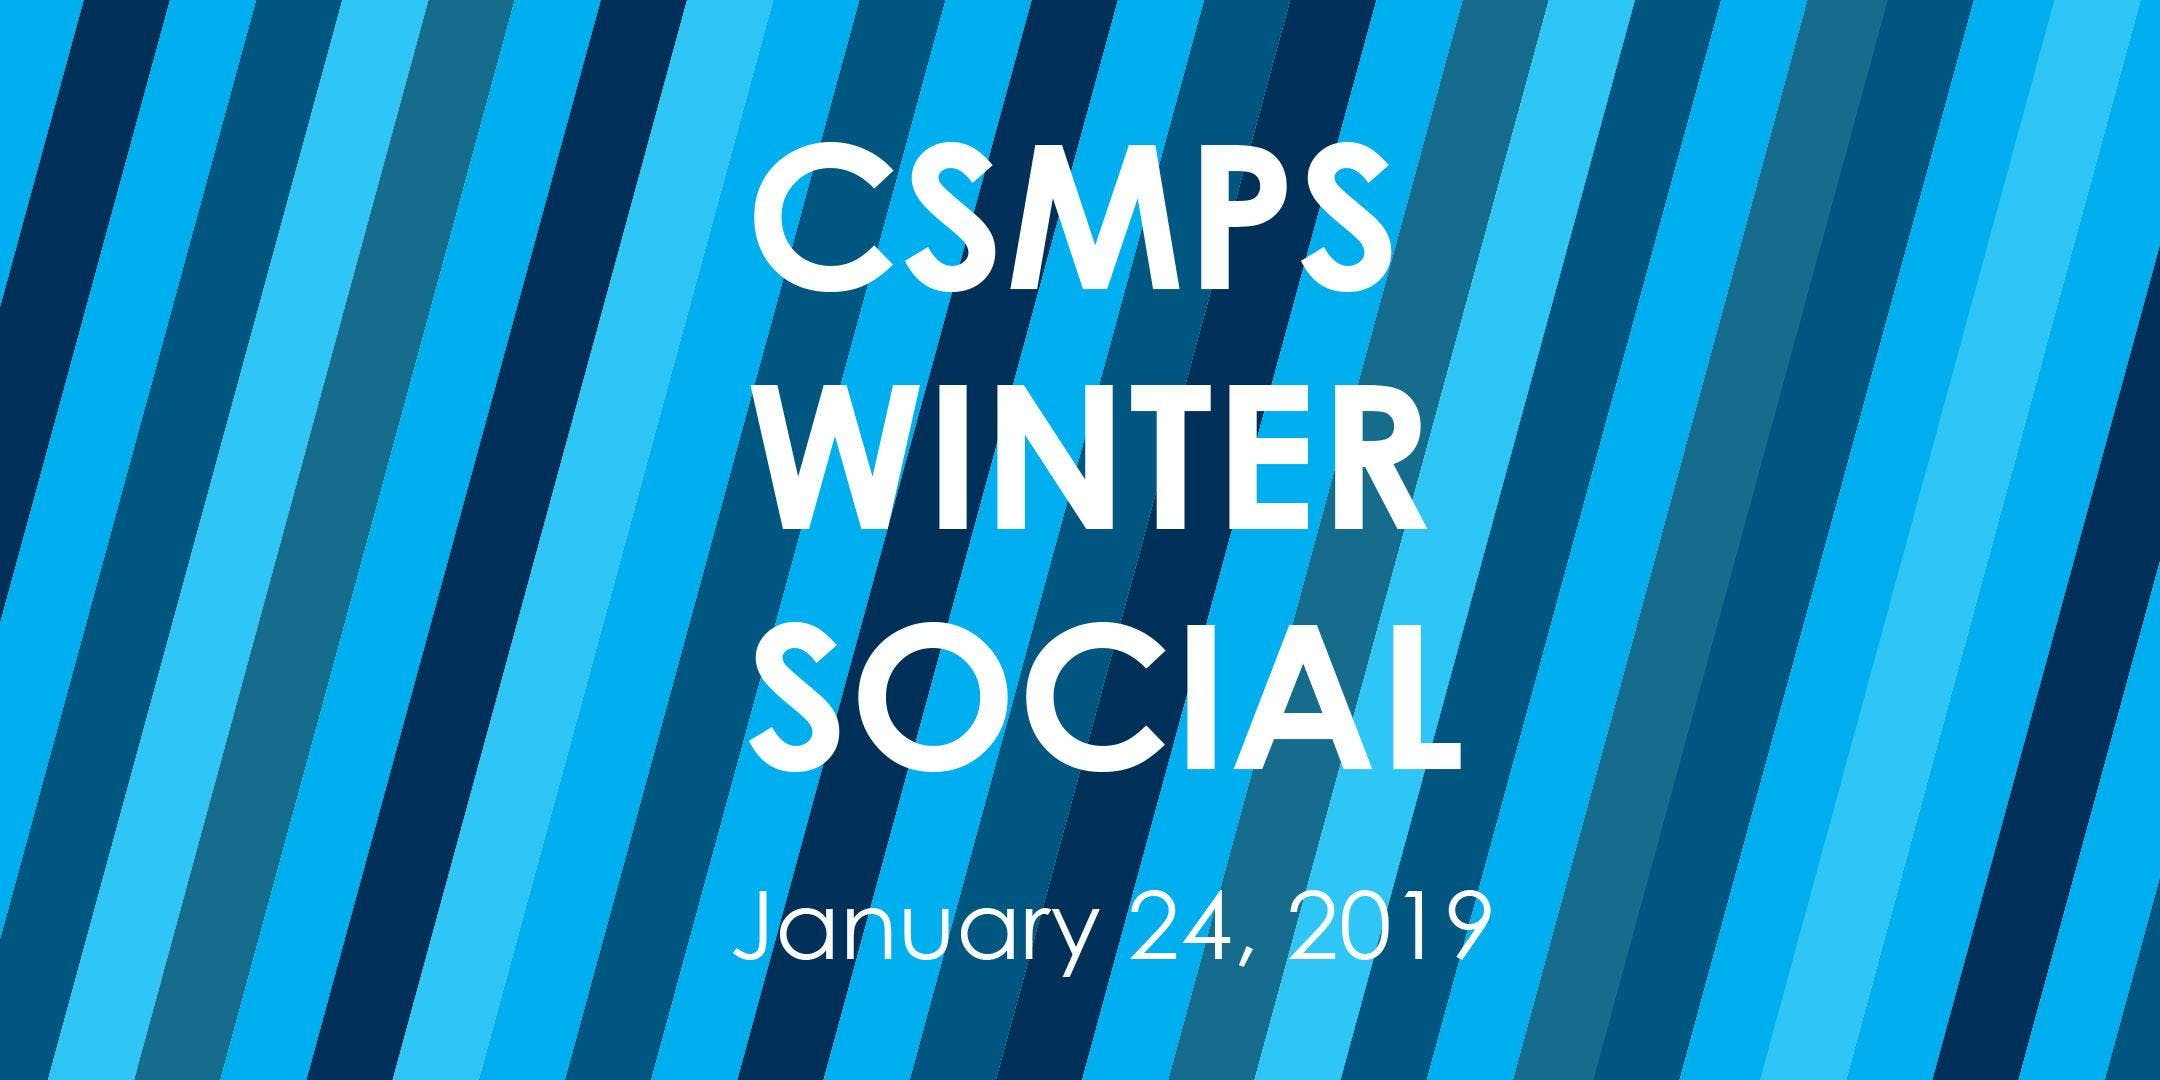 CSMPS Winter Social